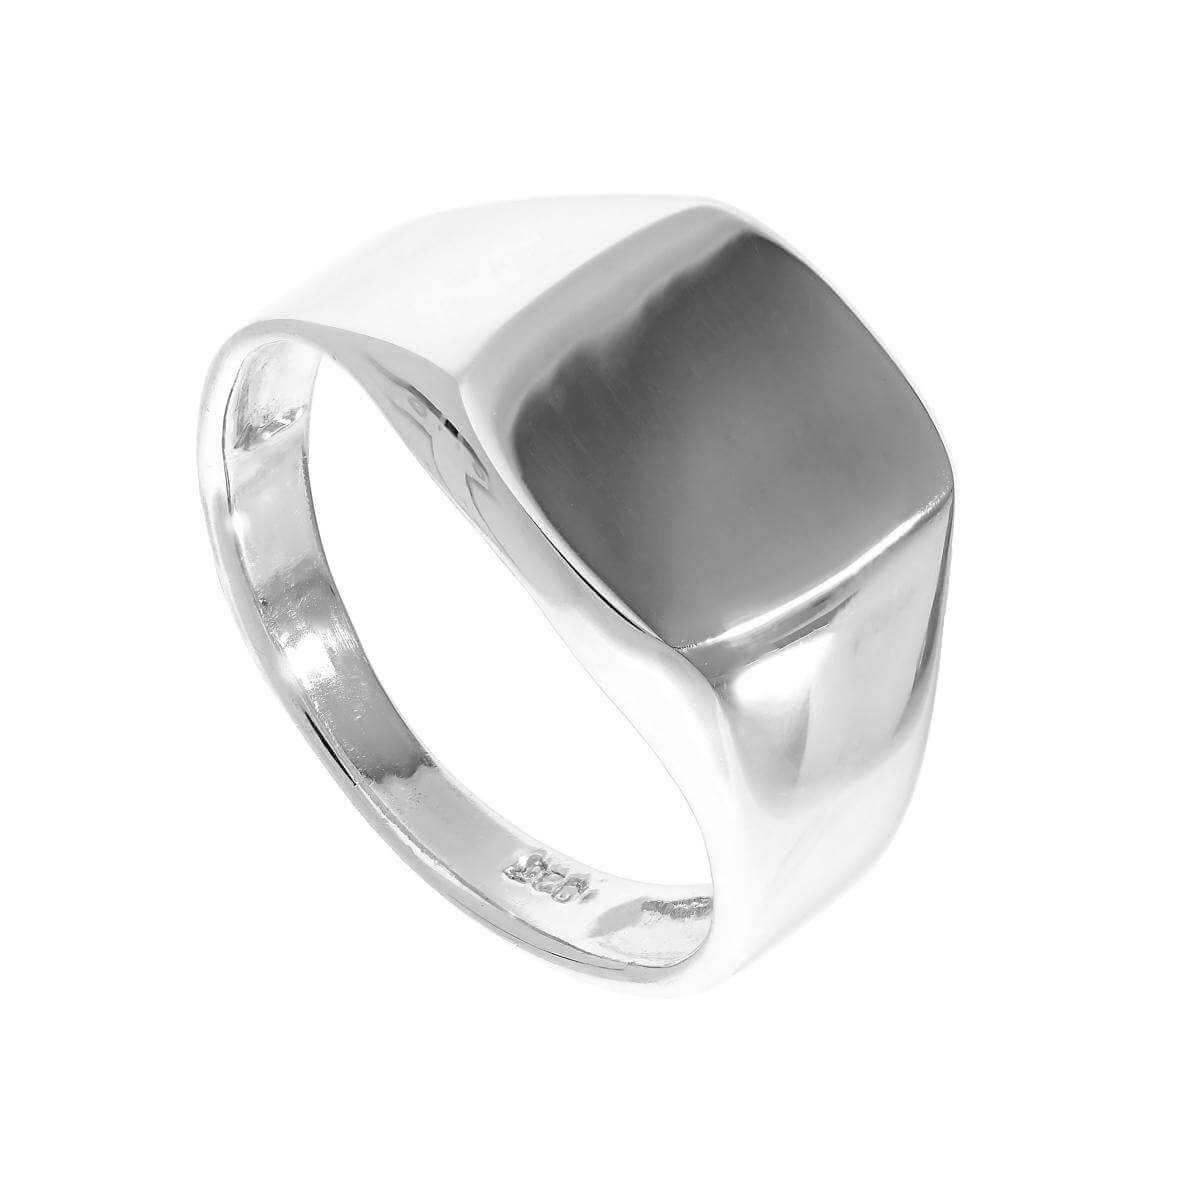 Sterling Silver Engravable Mens Signet Ring Sizes M - Z+1